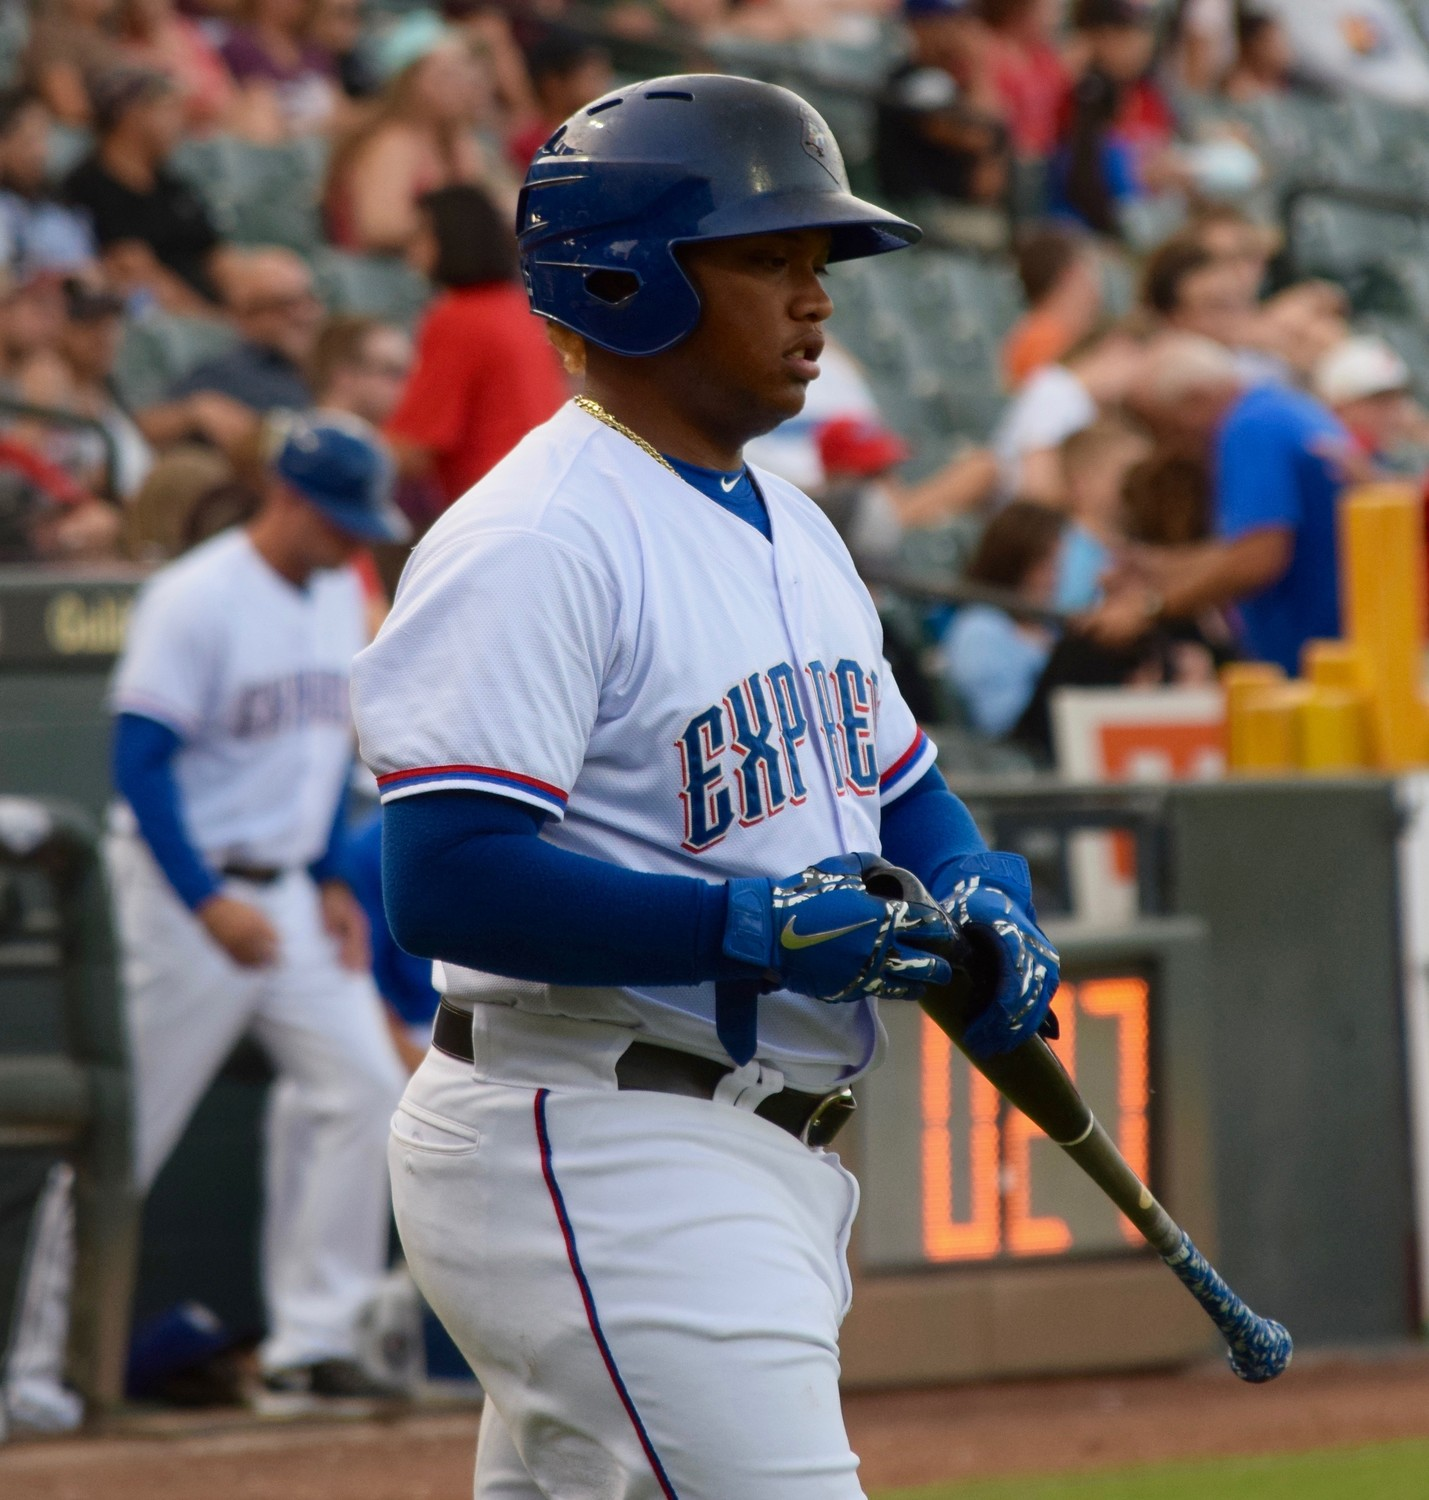 Willie Calhoun saw his career-long 18-game hitting streak snapped as the Express lost to the Oklahoma City Dodgers 11-1 on Sunday night.